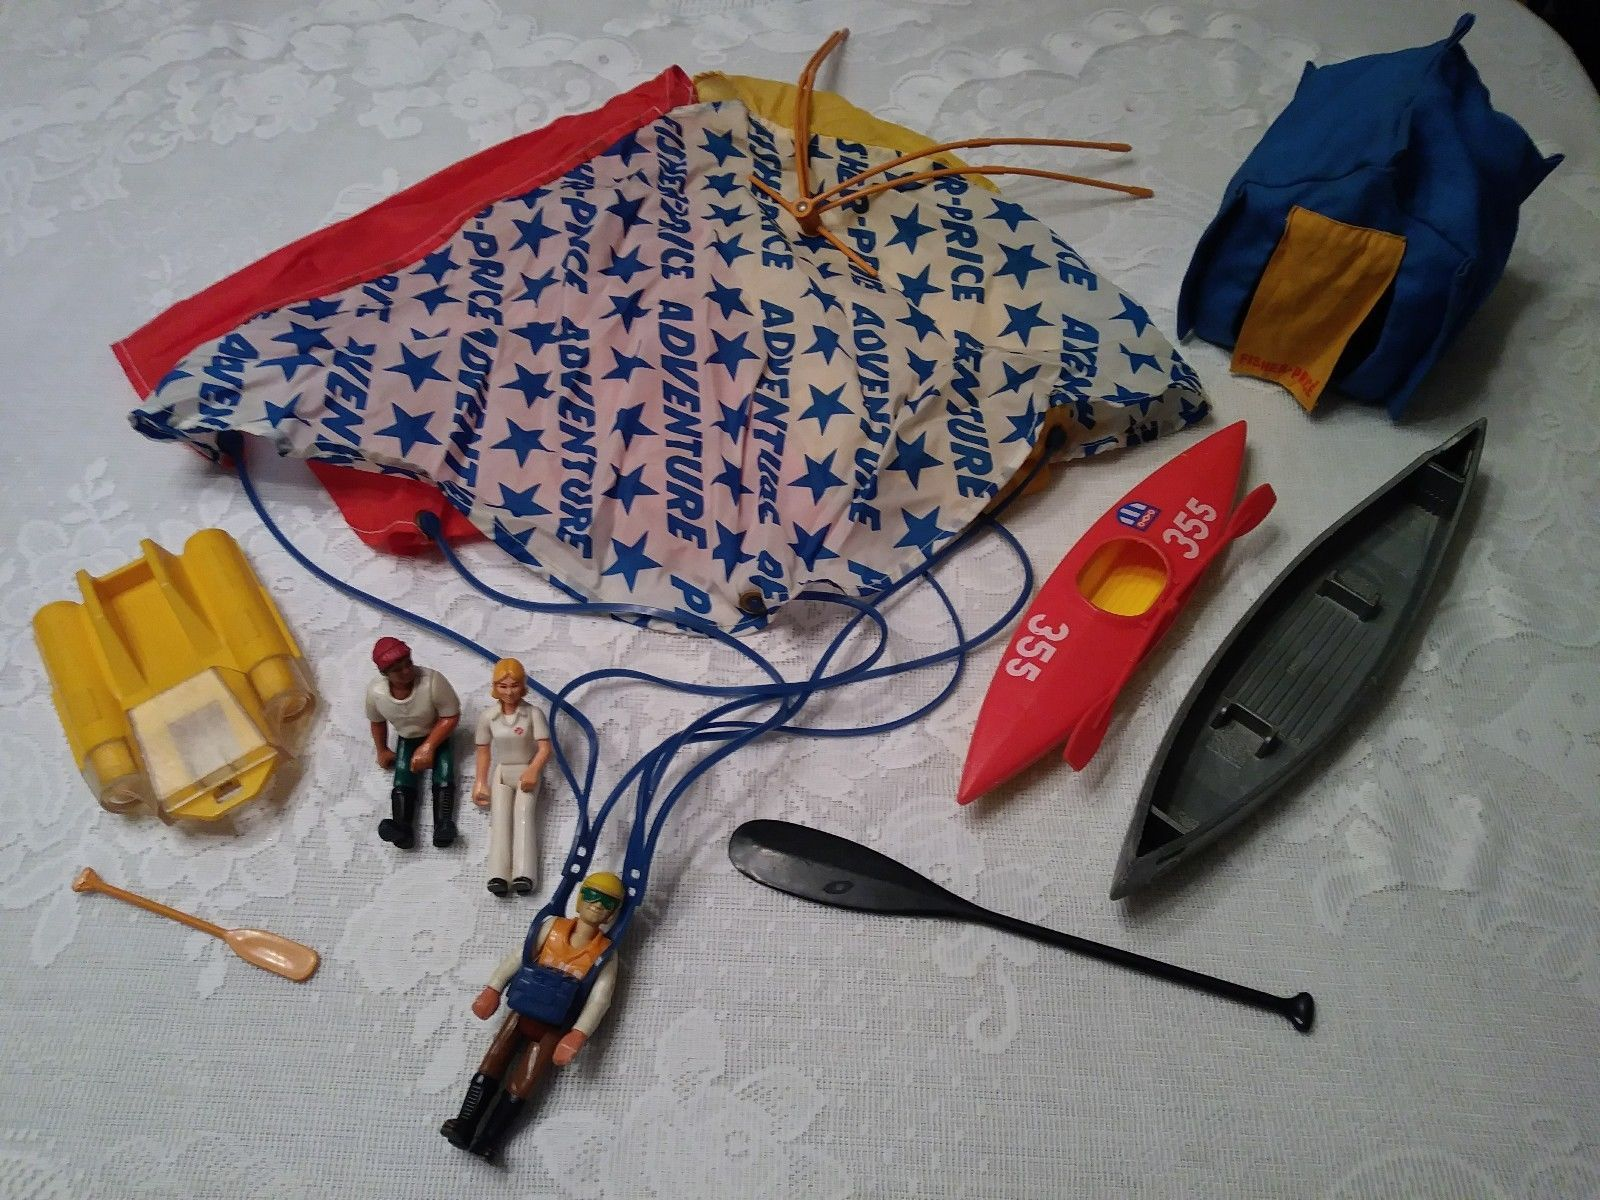 Vtg fisher price adventure people lot camping daredevil canoe vtg fisher price adventure people lot camping daredevil canoe kayak parachute buycottarizona